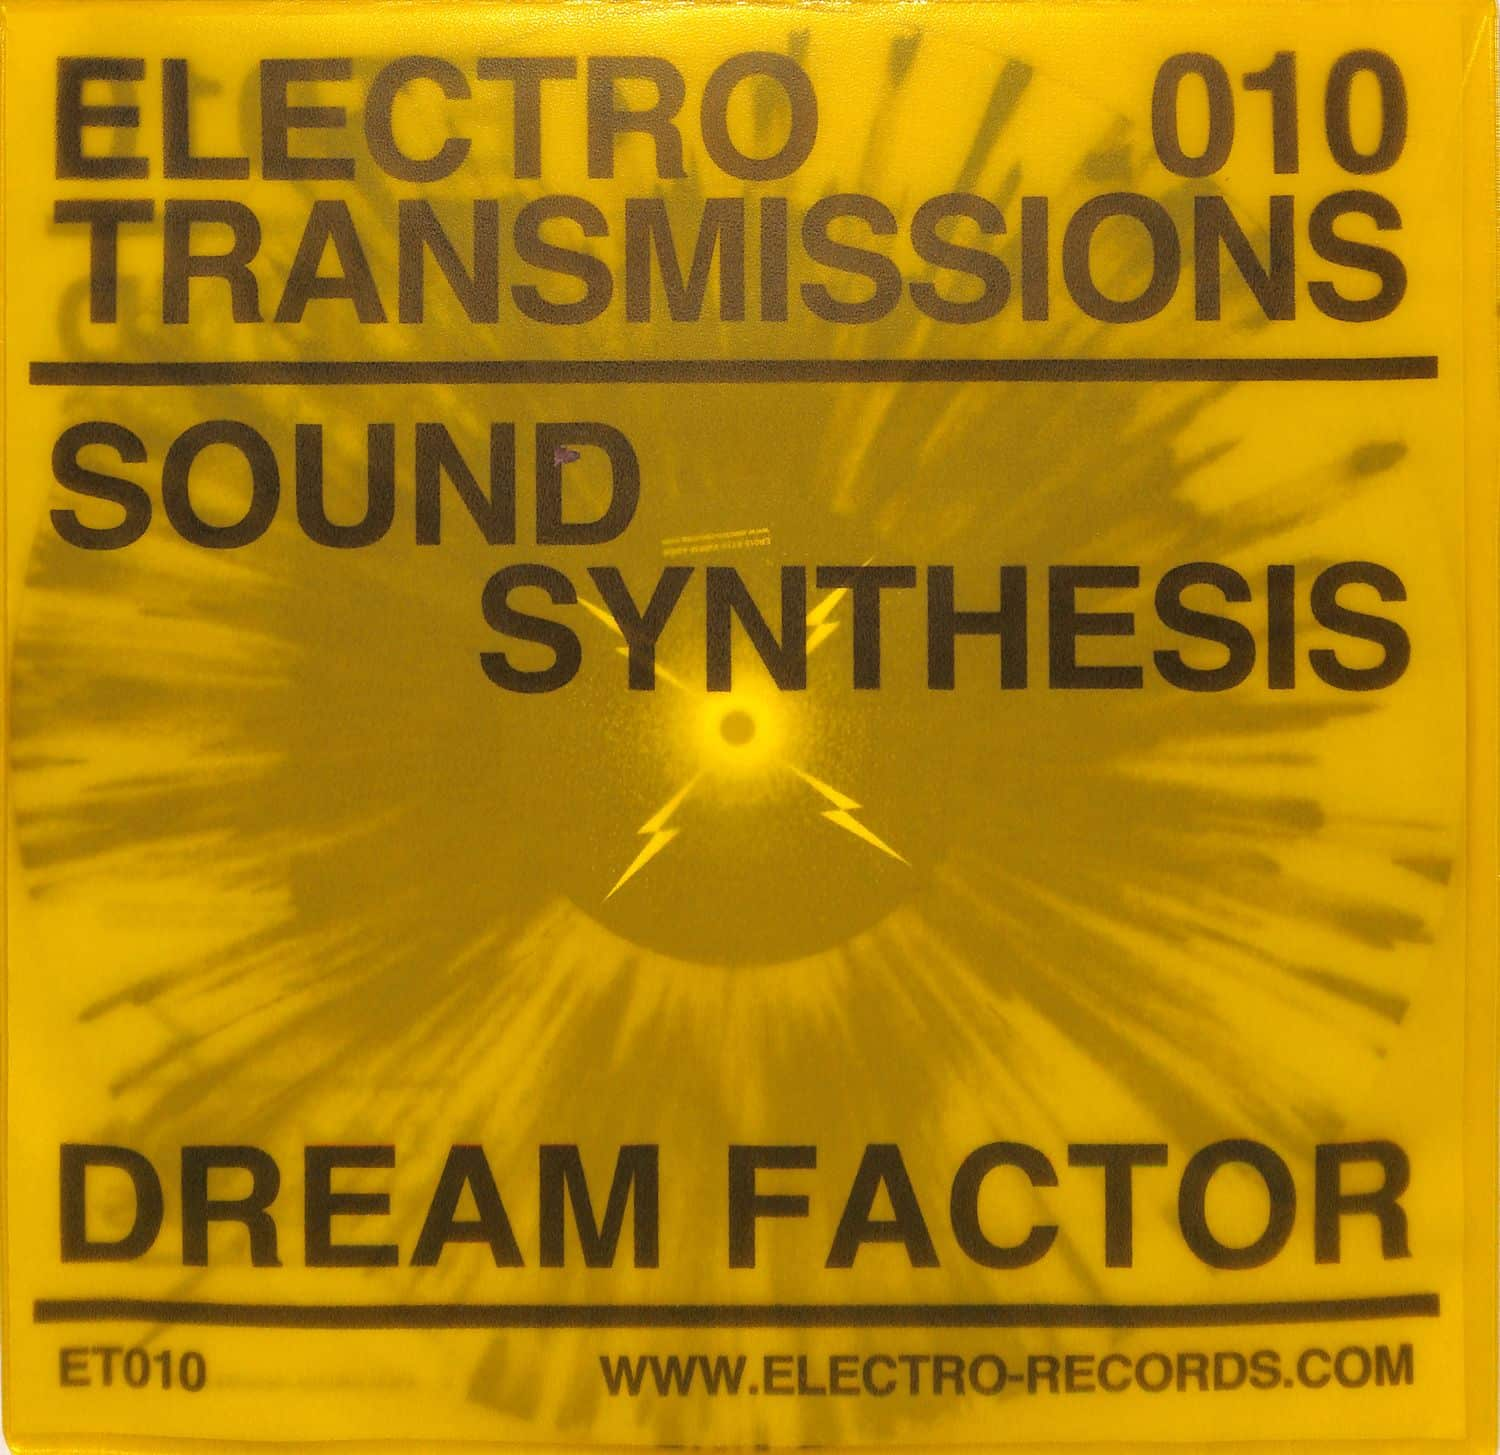 Sound Synthesis - ELECTRO TRANSMISSIONS 010 DREAM FACTOR EP